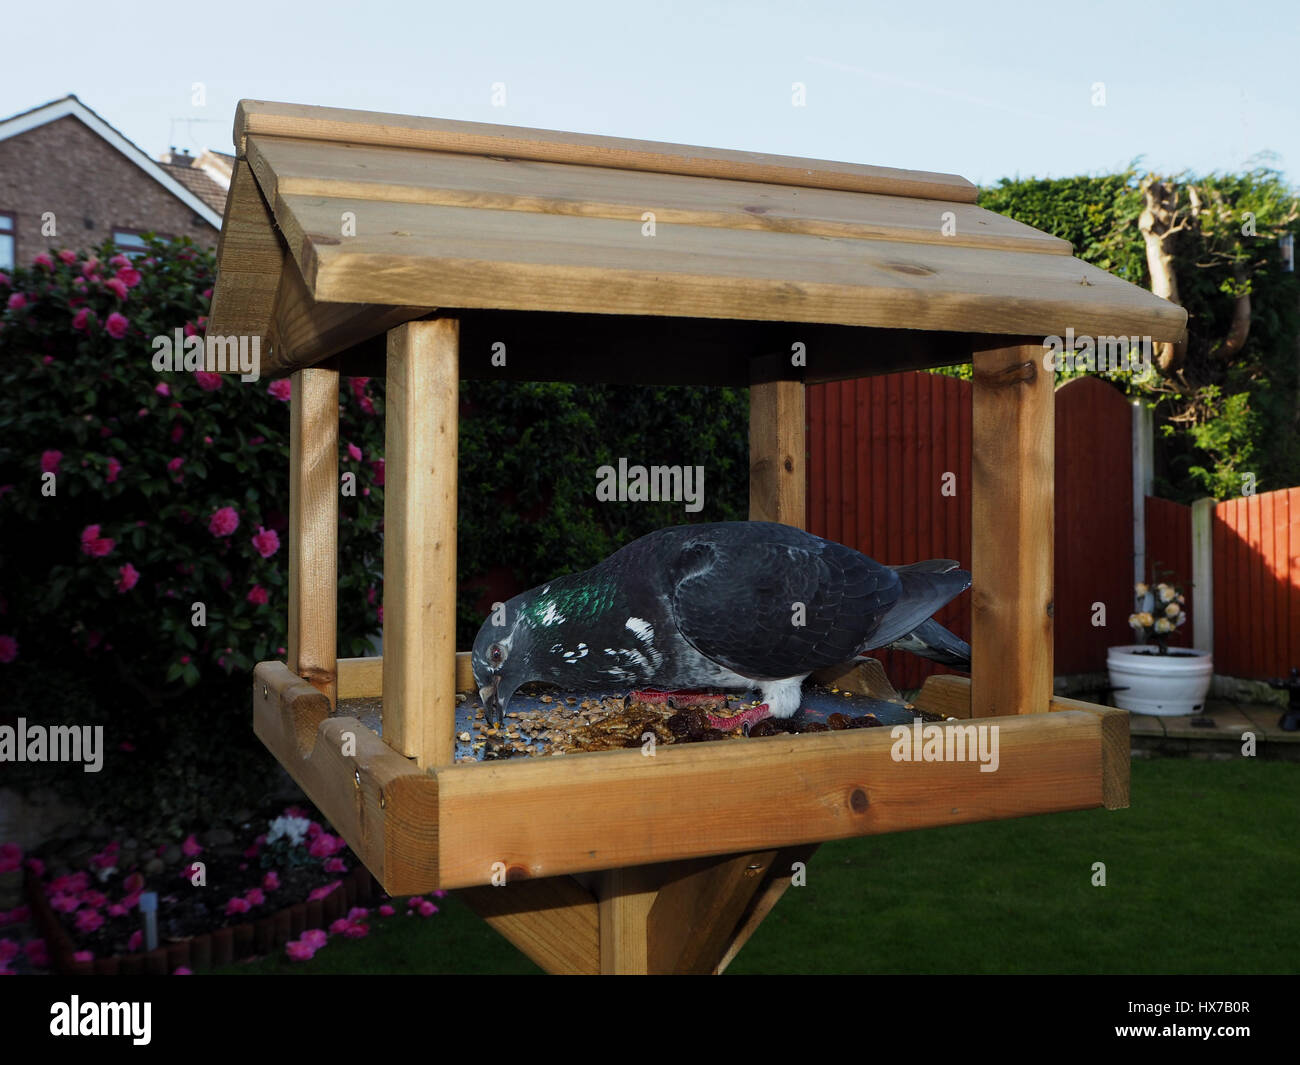 Pigeon on a domestic bird table - Stock Image